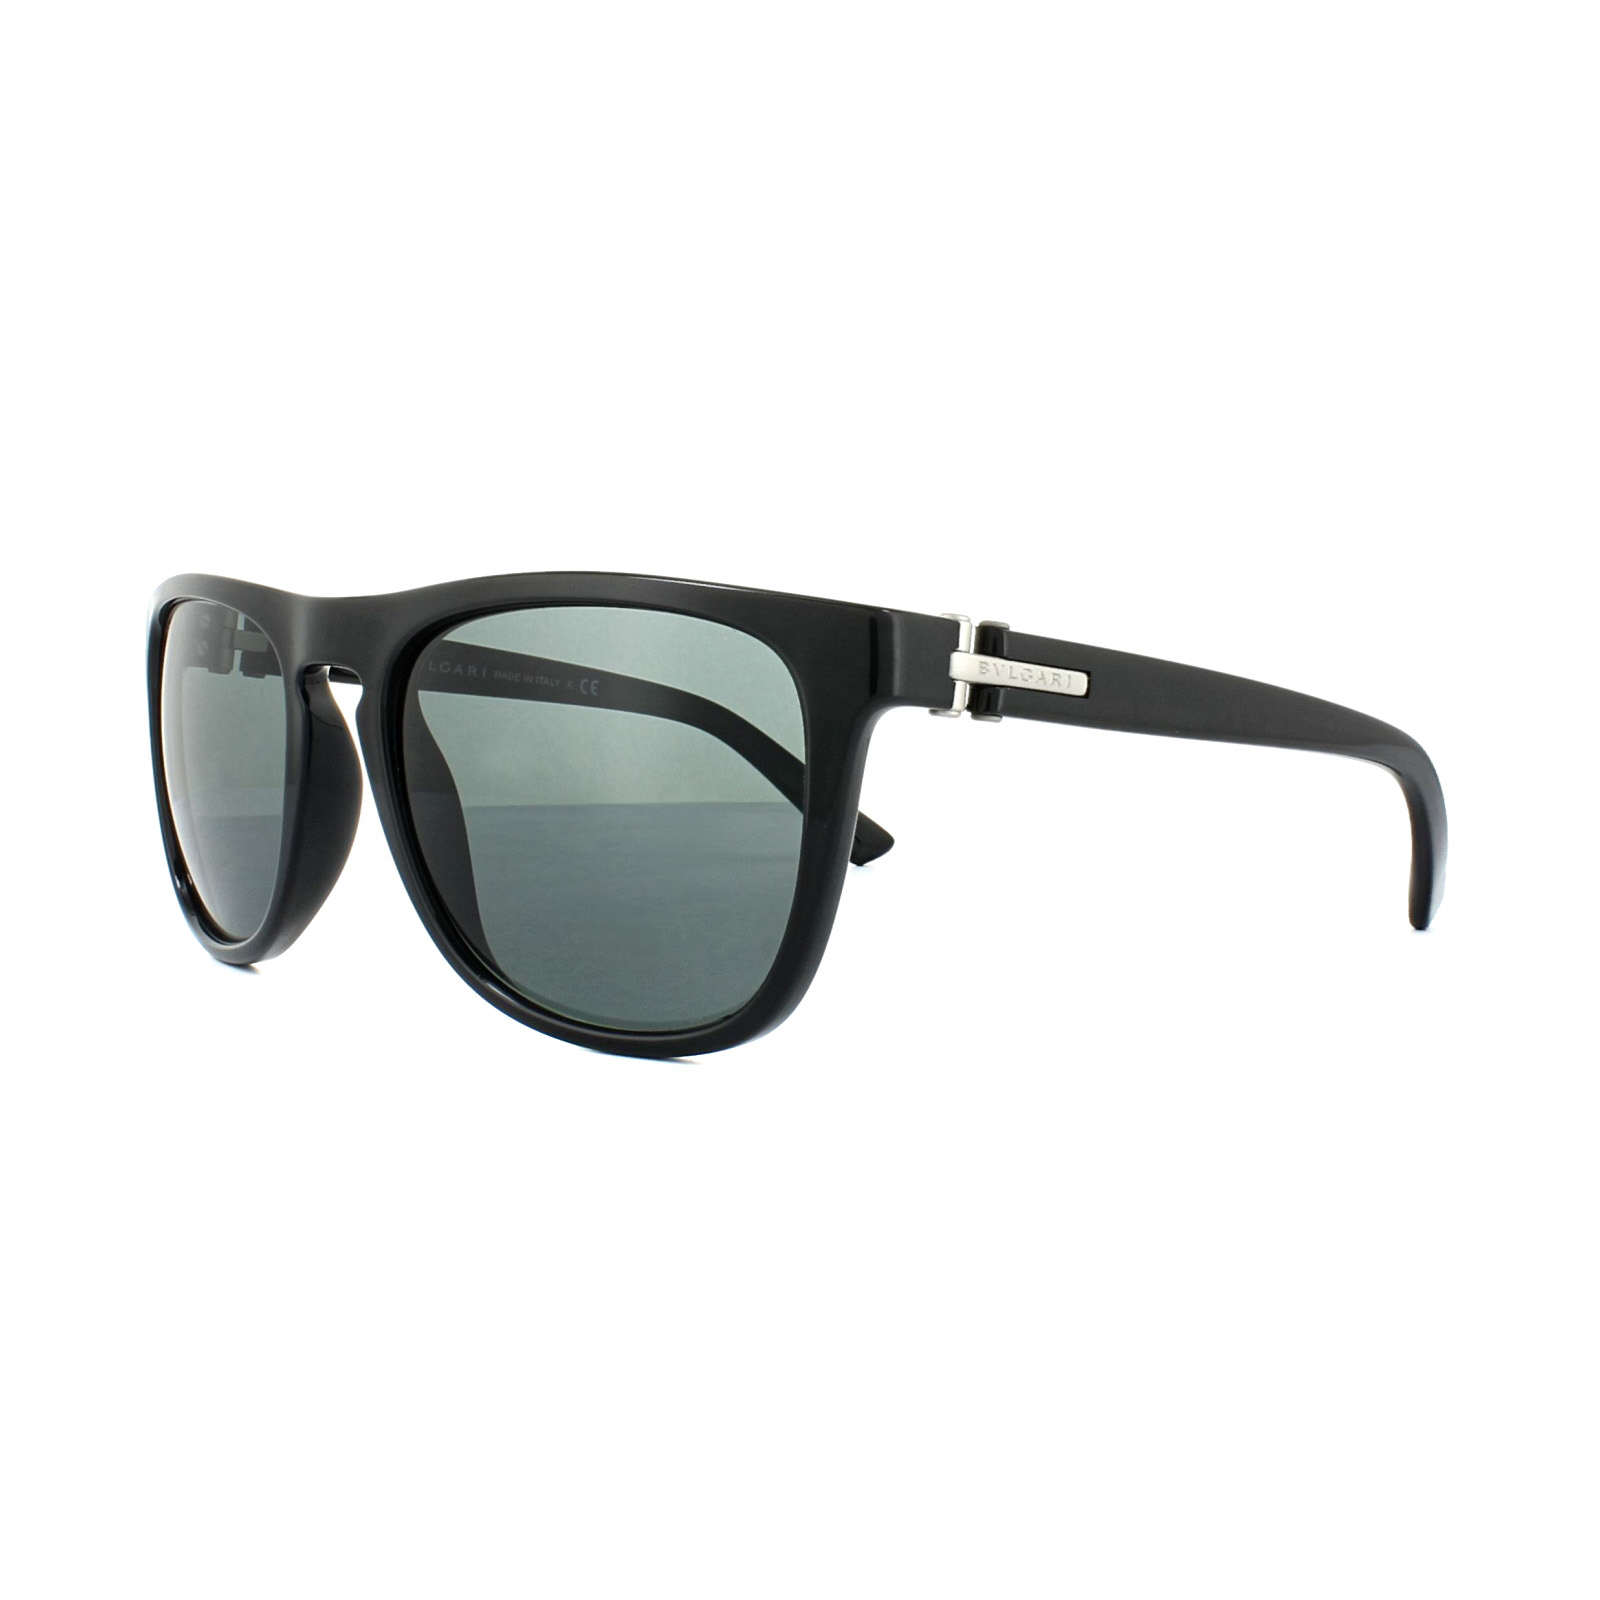 6786f83da4912 Bvlgari Sunglasses 7020 901 87 Black Grey 8053672257380   eBay